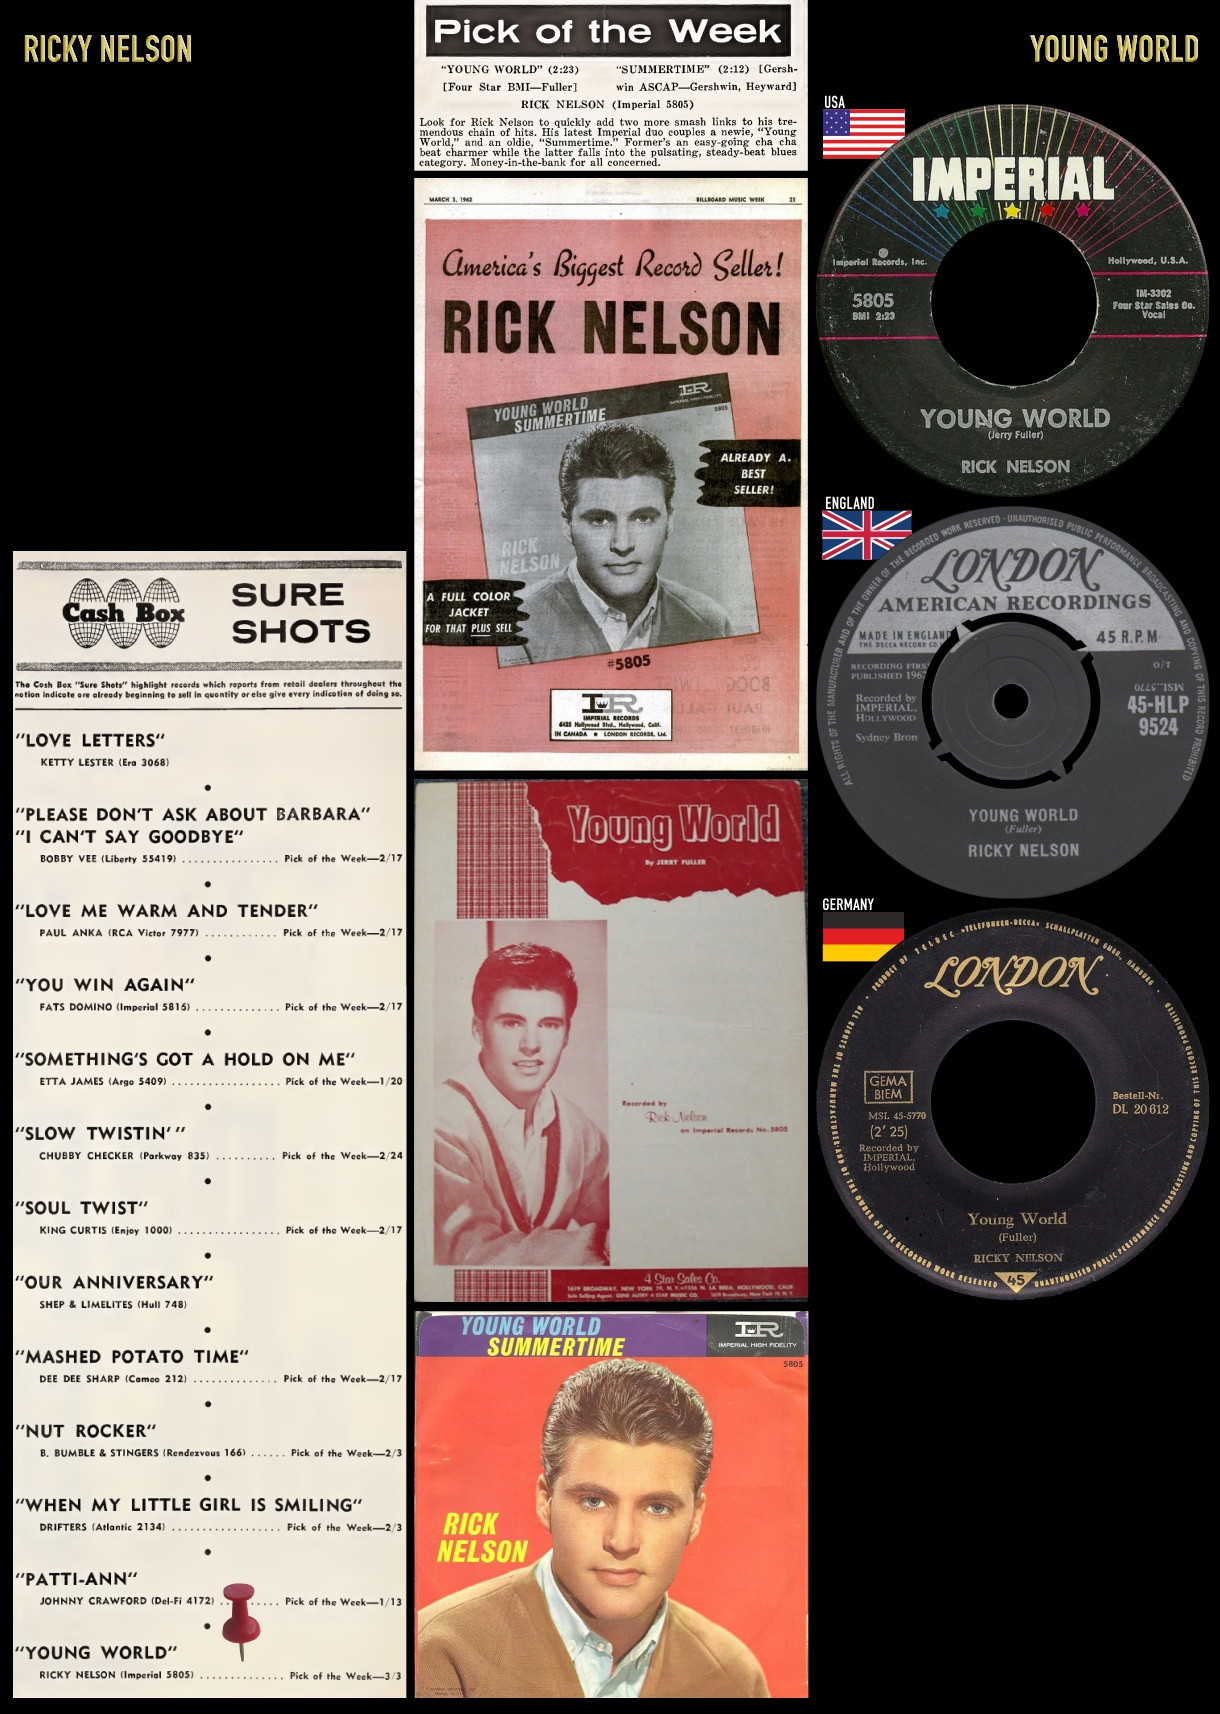 620303_Ricky Nelson_Young World